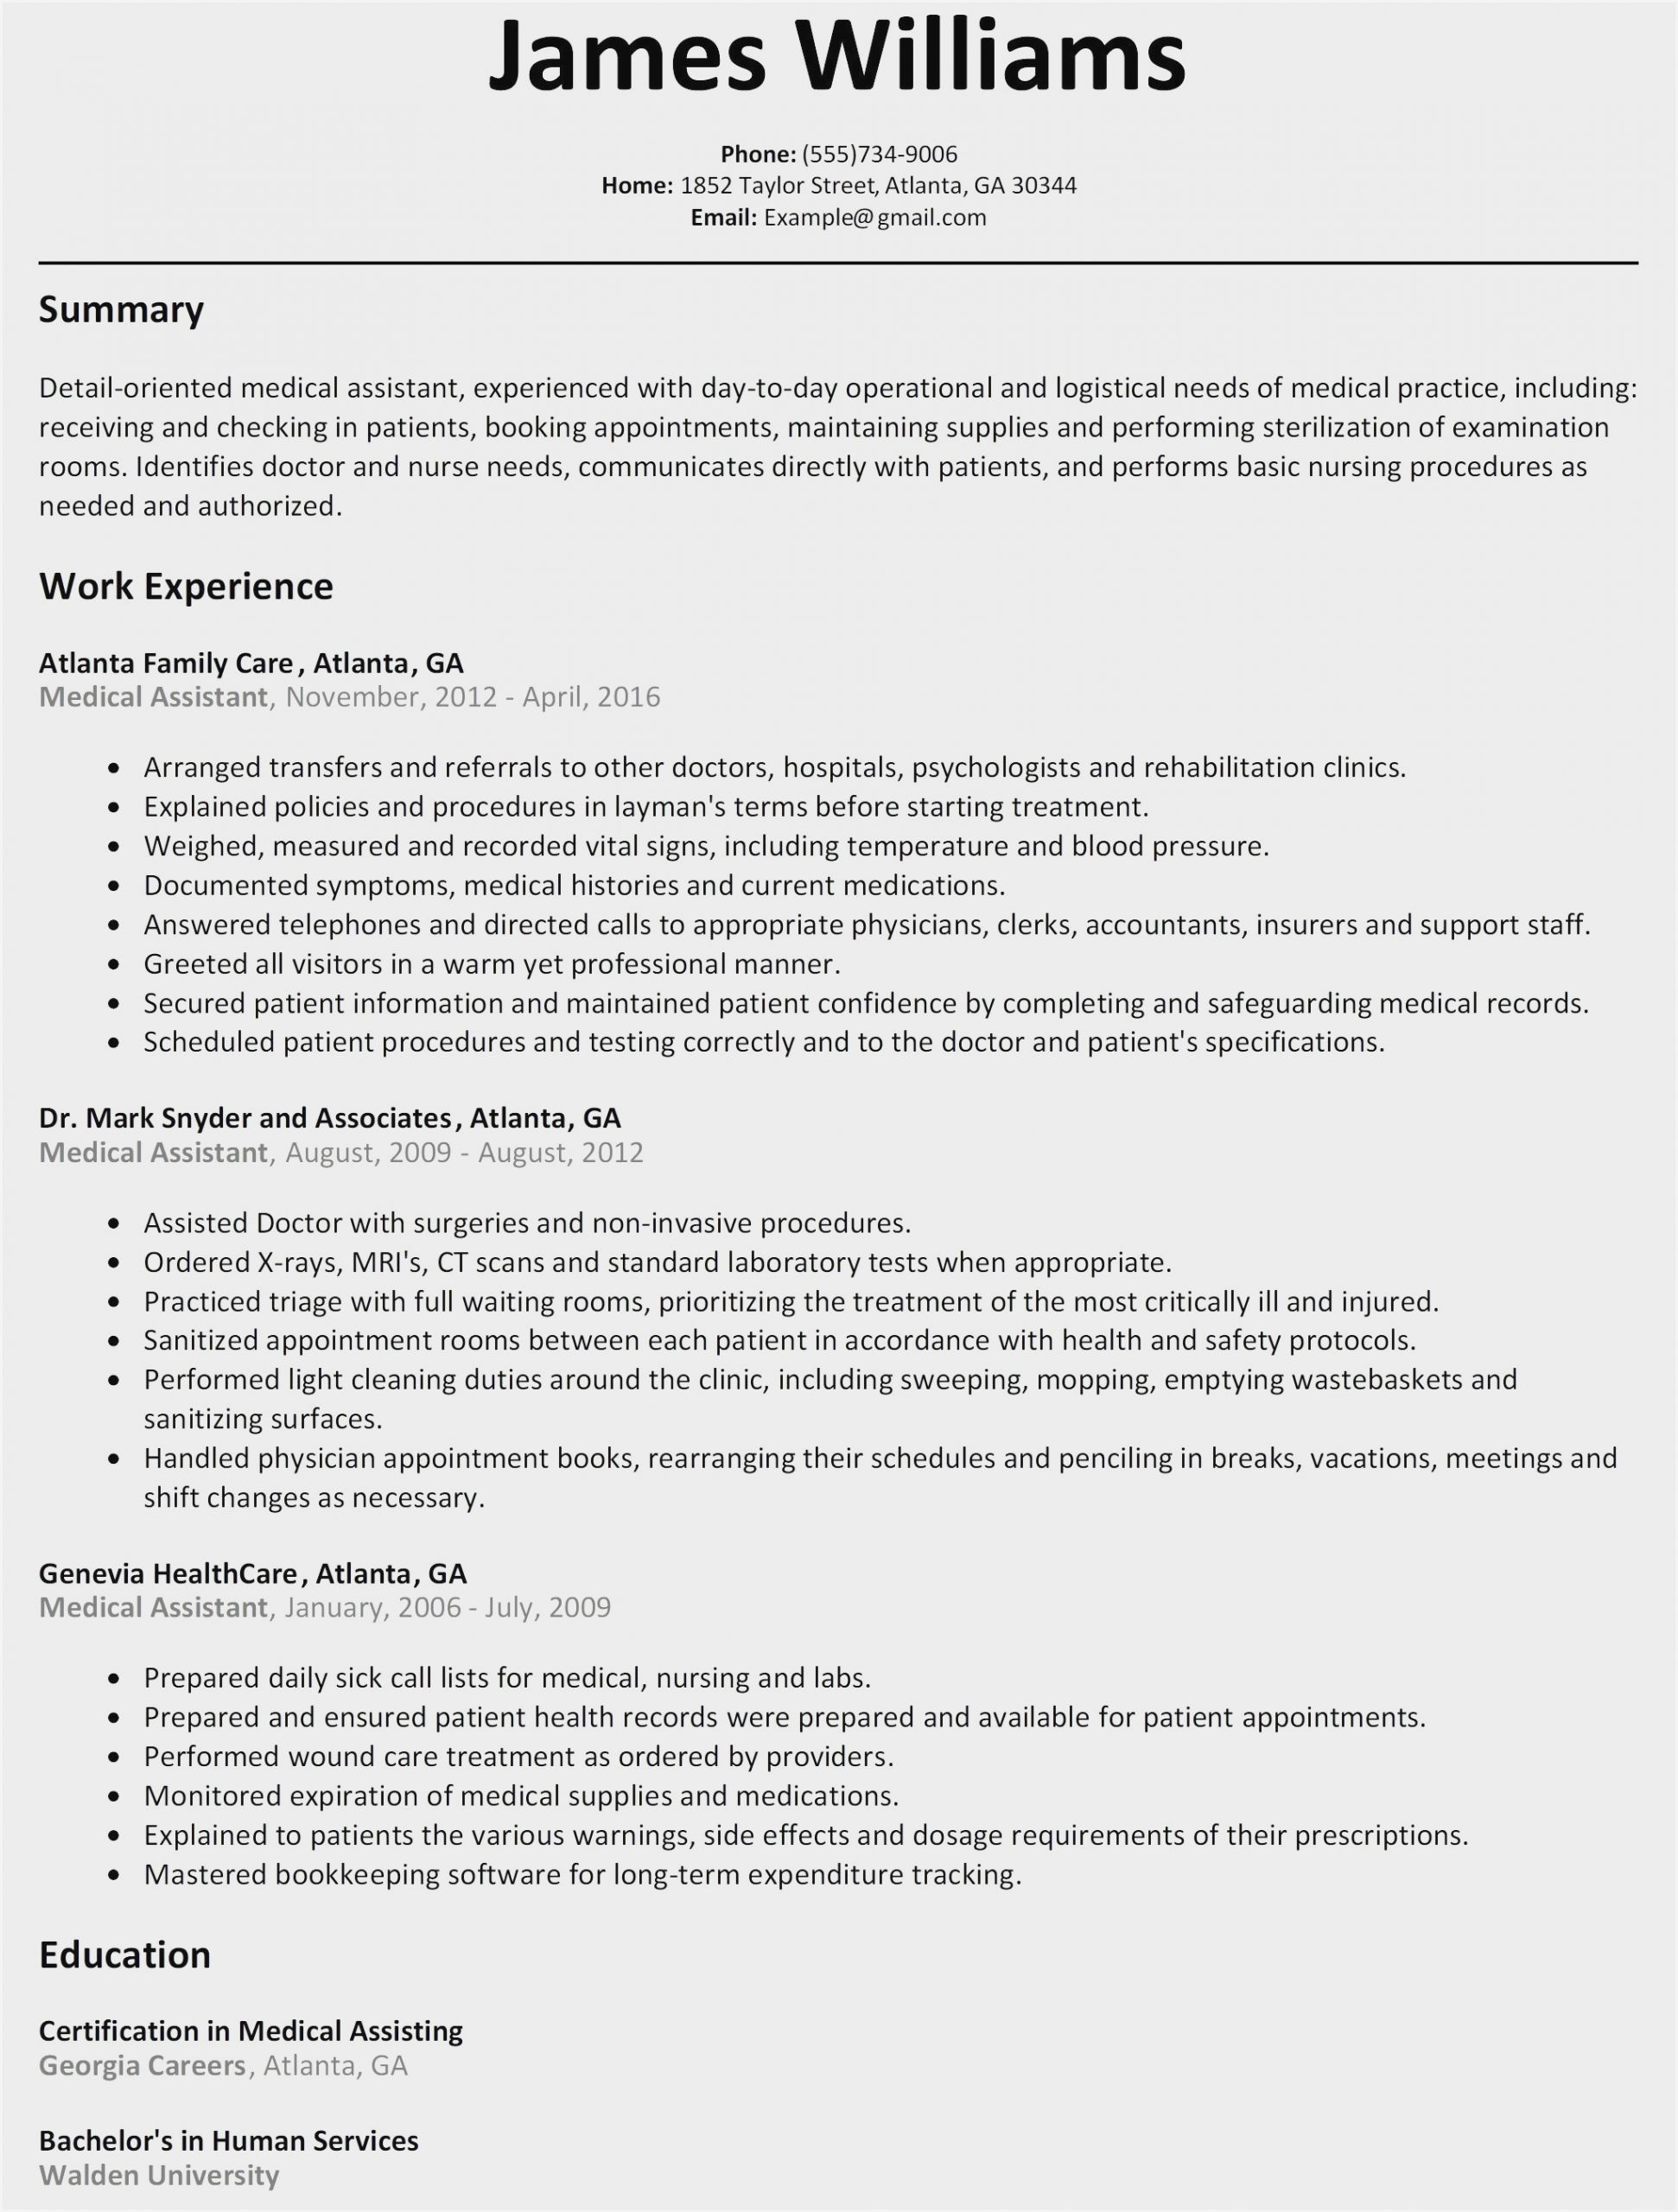 best resume writing services us all industries professional medical writers expert Resume Professional Medical Resume Writers